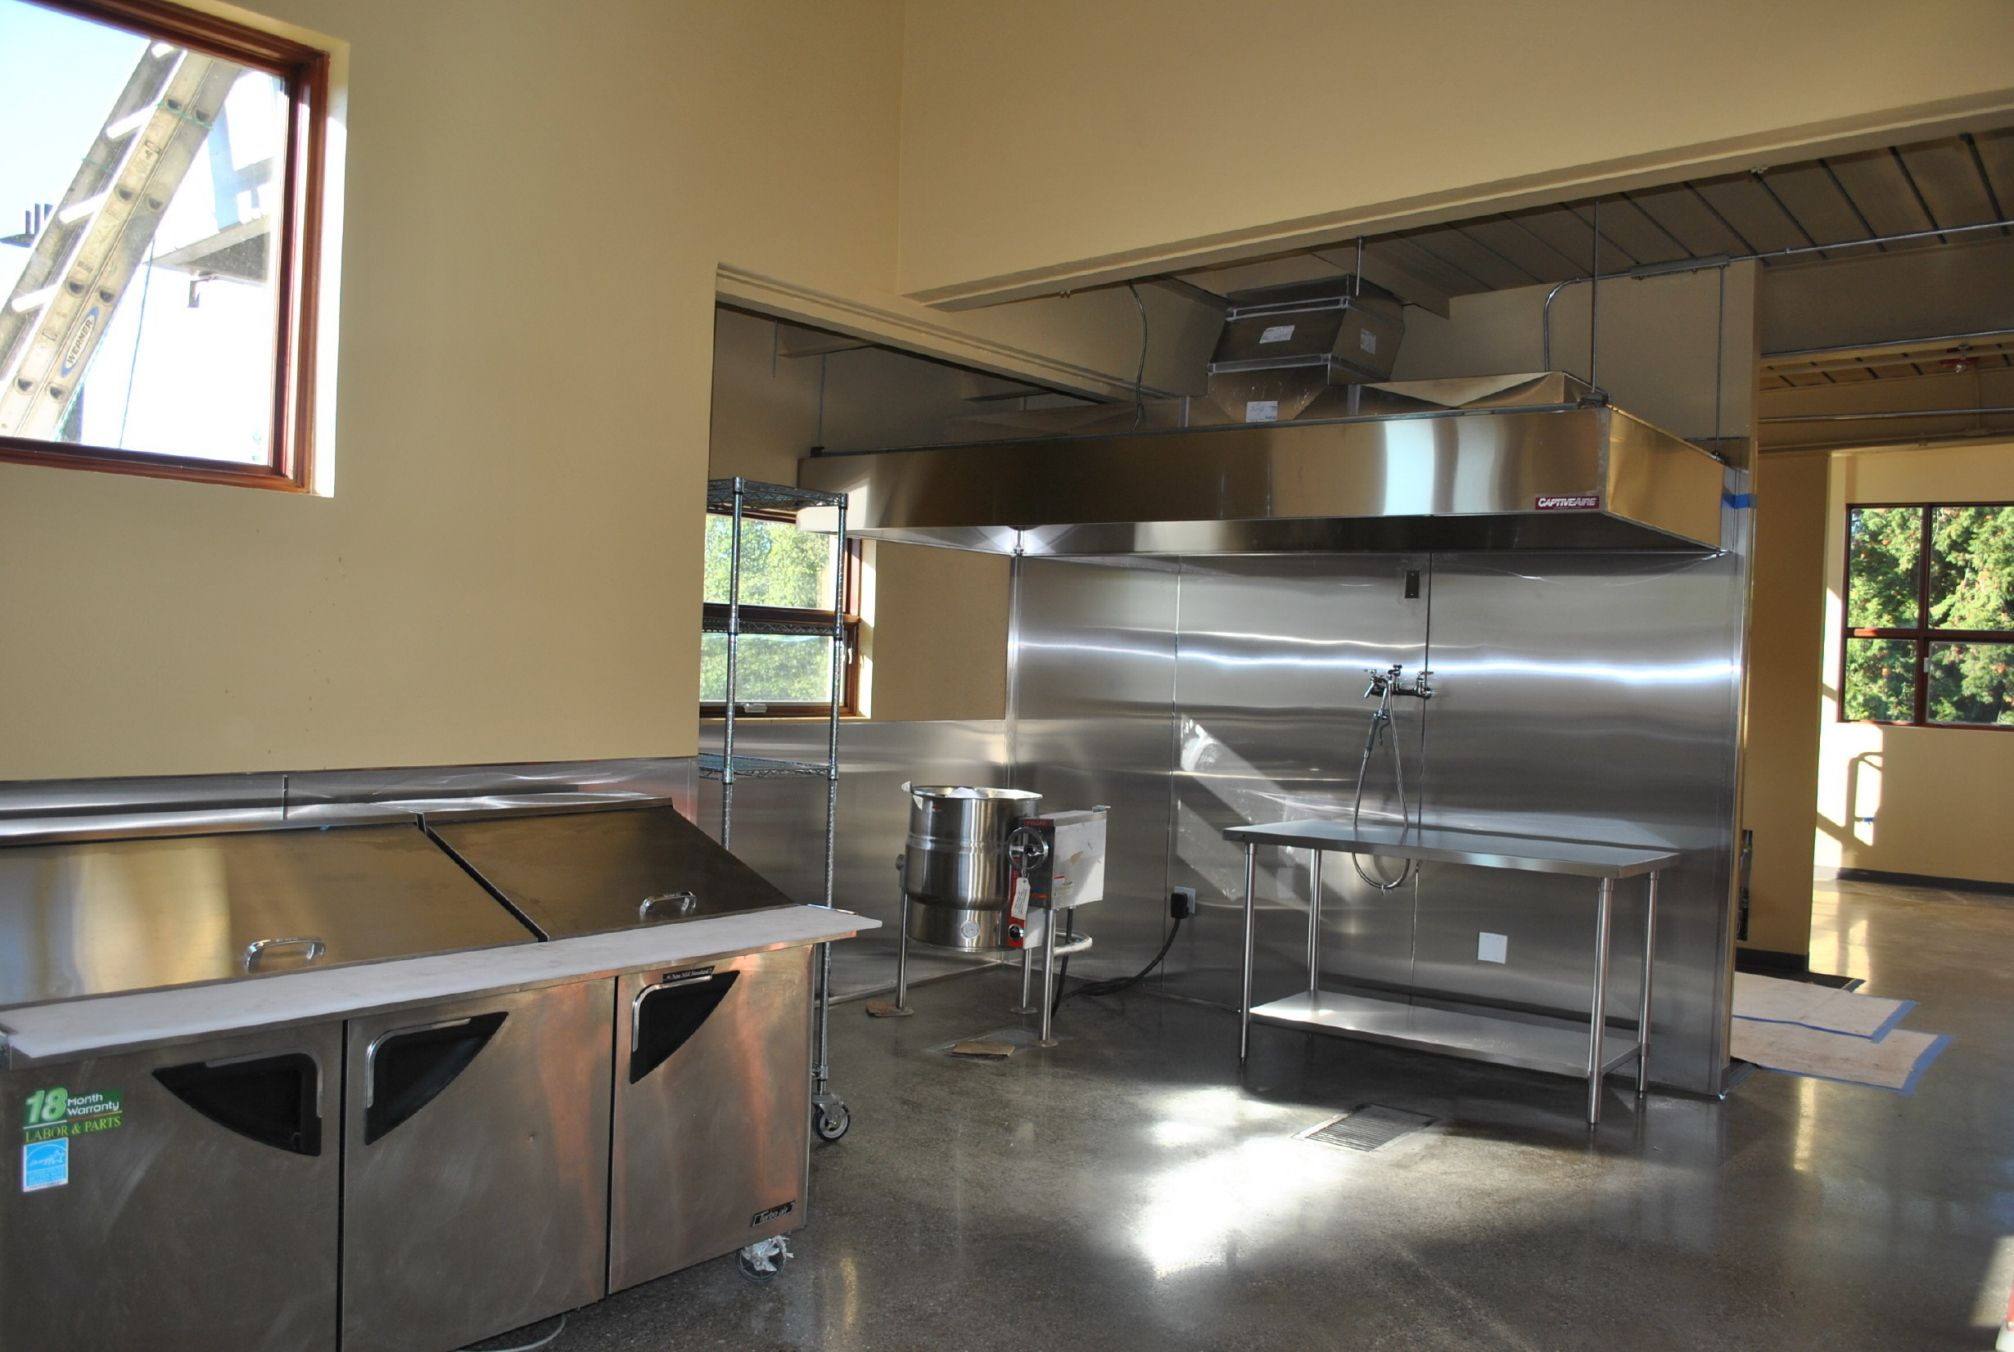 catering kitchens for rent leeds